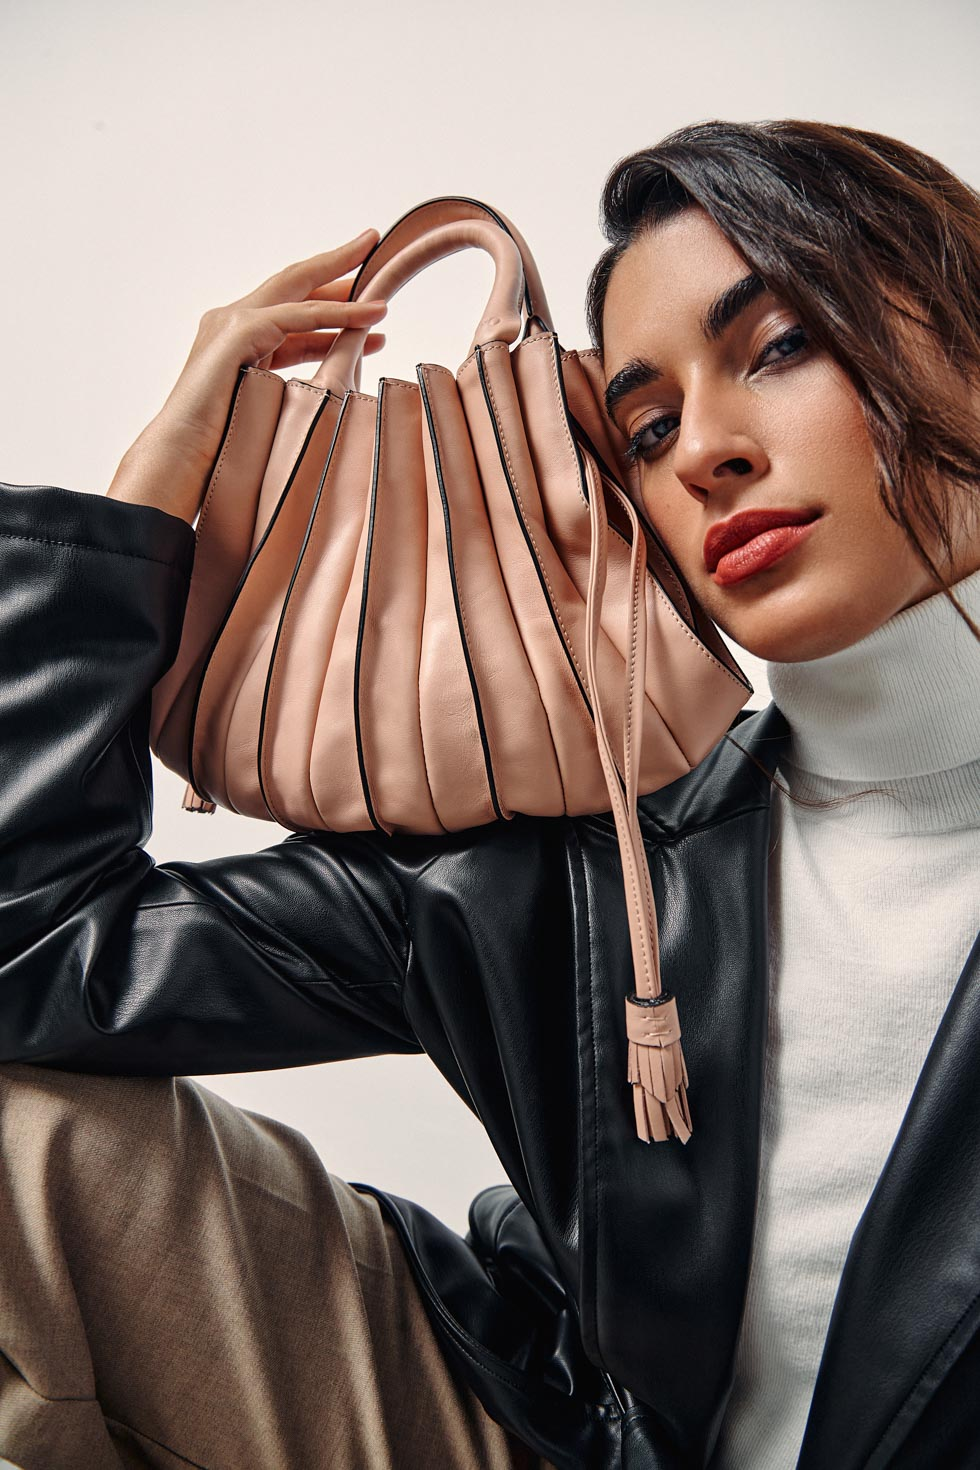 Lupo is a well-known luxury brand from Barcelona est. 1920. They contact us not only for their new photo campaing, but also to help they define their target and they styling. The intention was to rejuvenete the brand and making it trendier while keeping it classy.